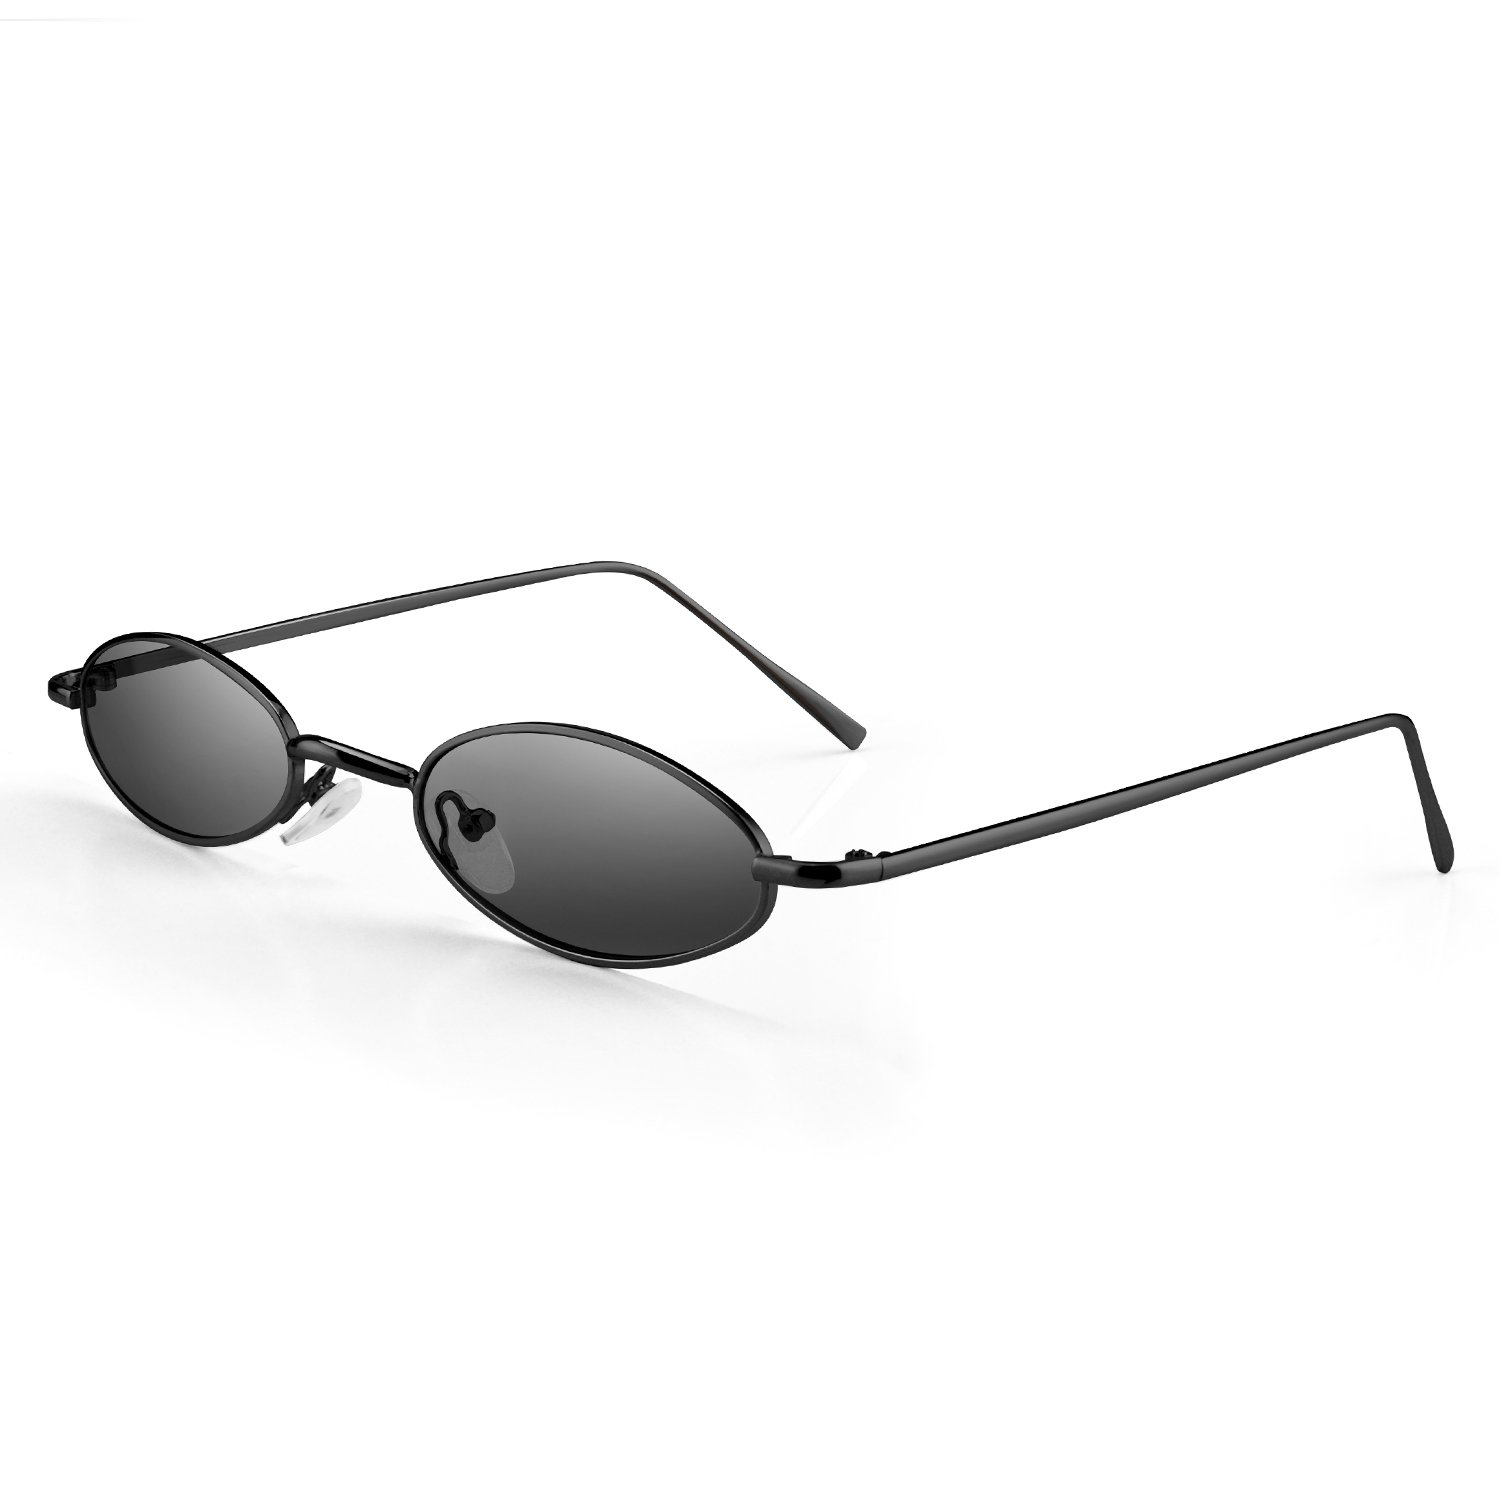 9eb96bd7c8f Amazon.com  PGXT Vintage Slender Oval Super Small Sunglasses For Girls Sexy  Retro Round Tiny Sun (Black frame